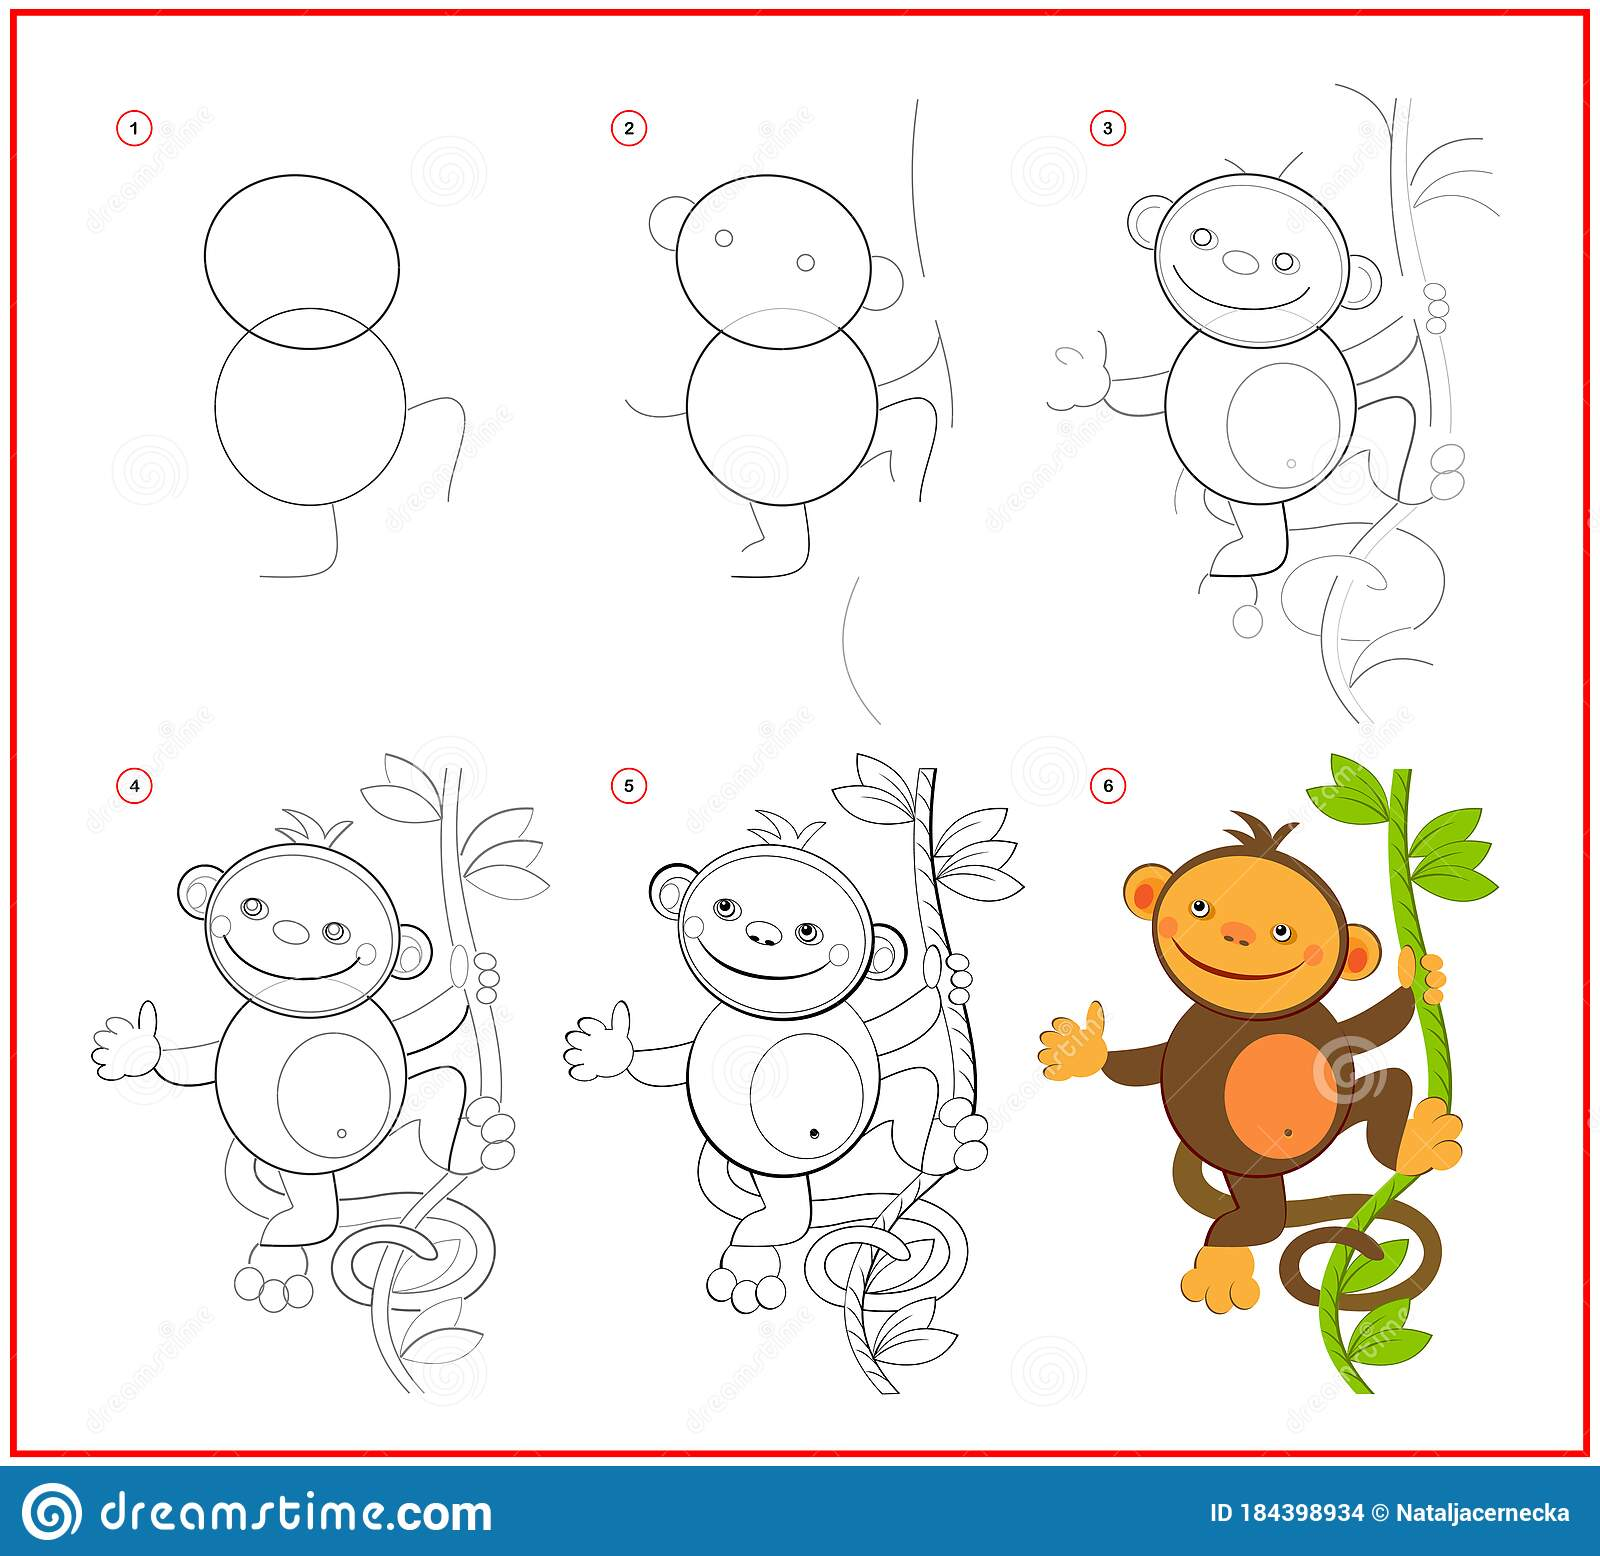 How To Draw Cute Toy Monkey Educational Page For Children